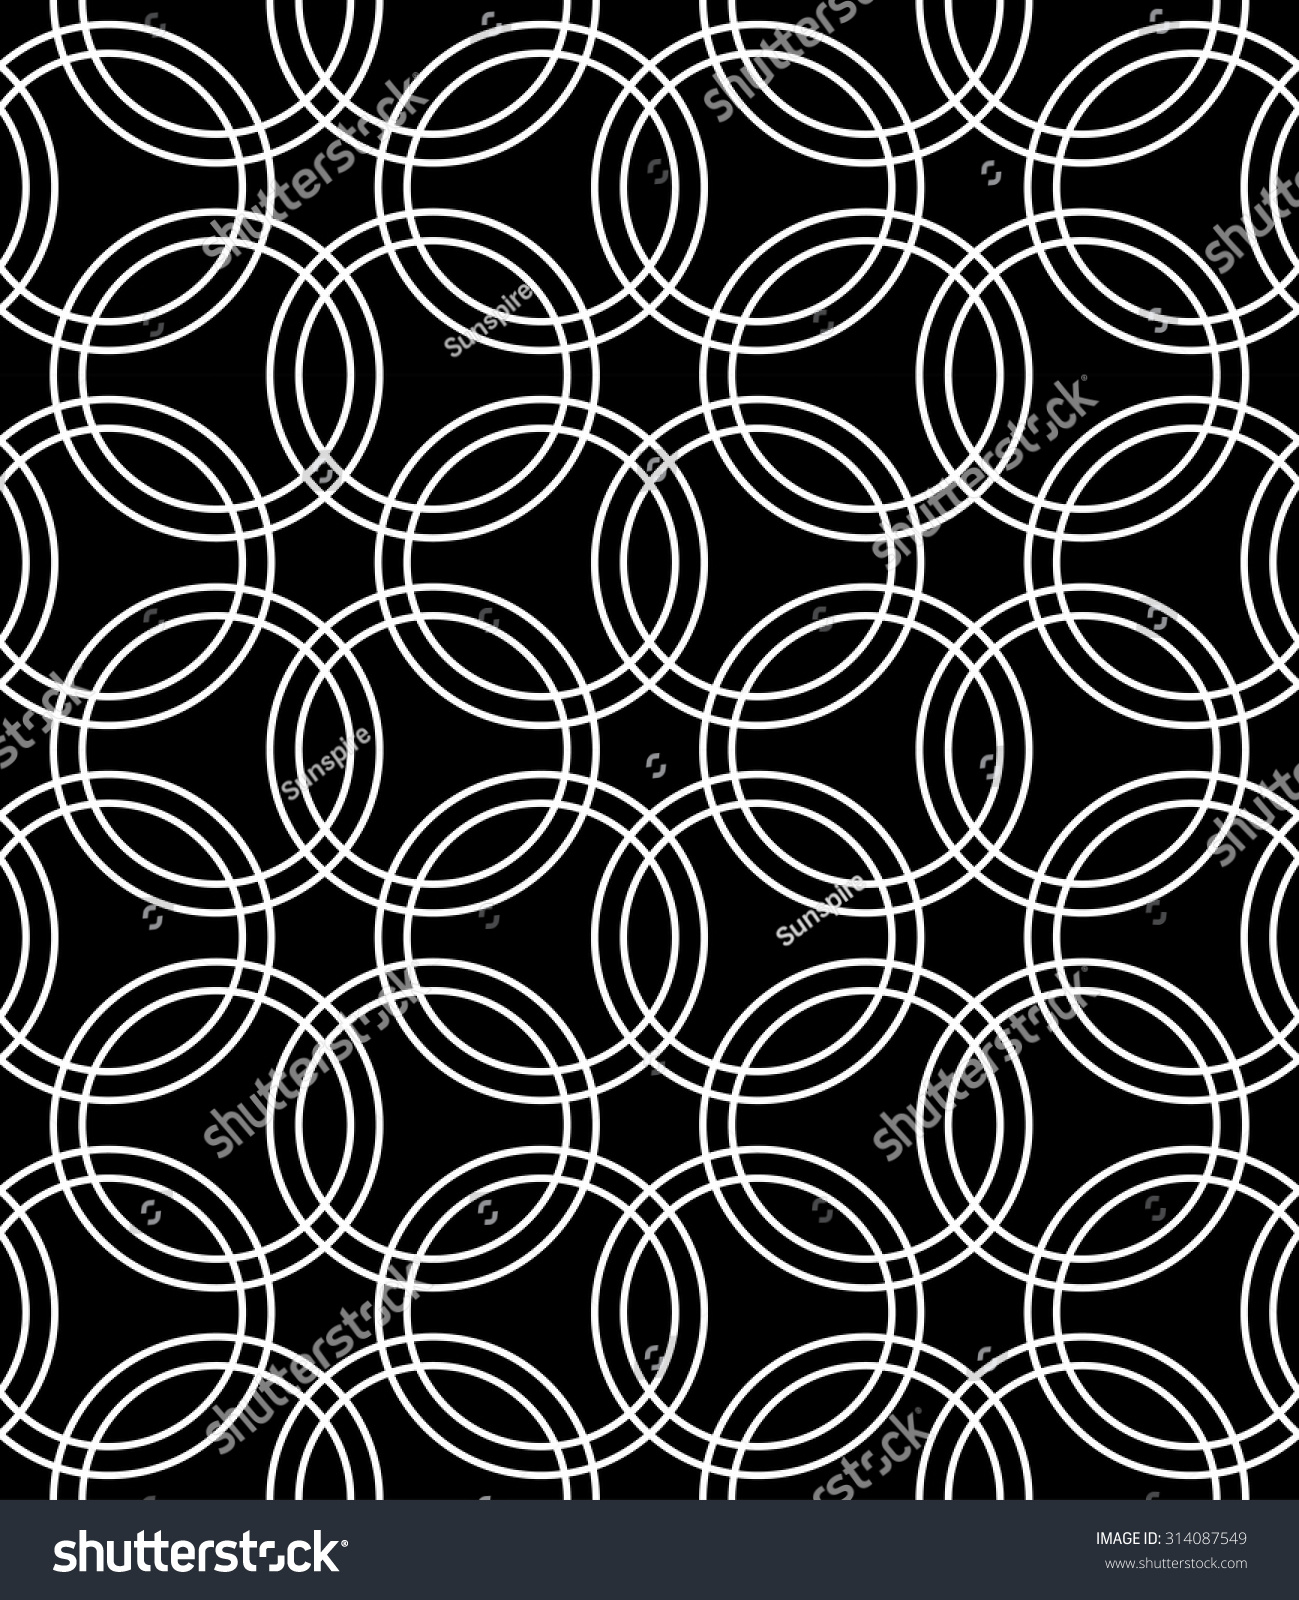 Bed sheet design texture - Vector Modern Seamless Pattern Flowers Black And White Textile Print Stylish Background Abstract